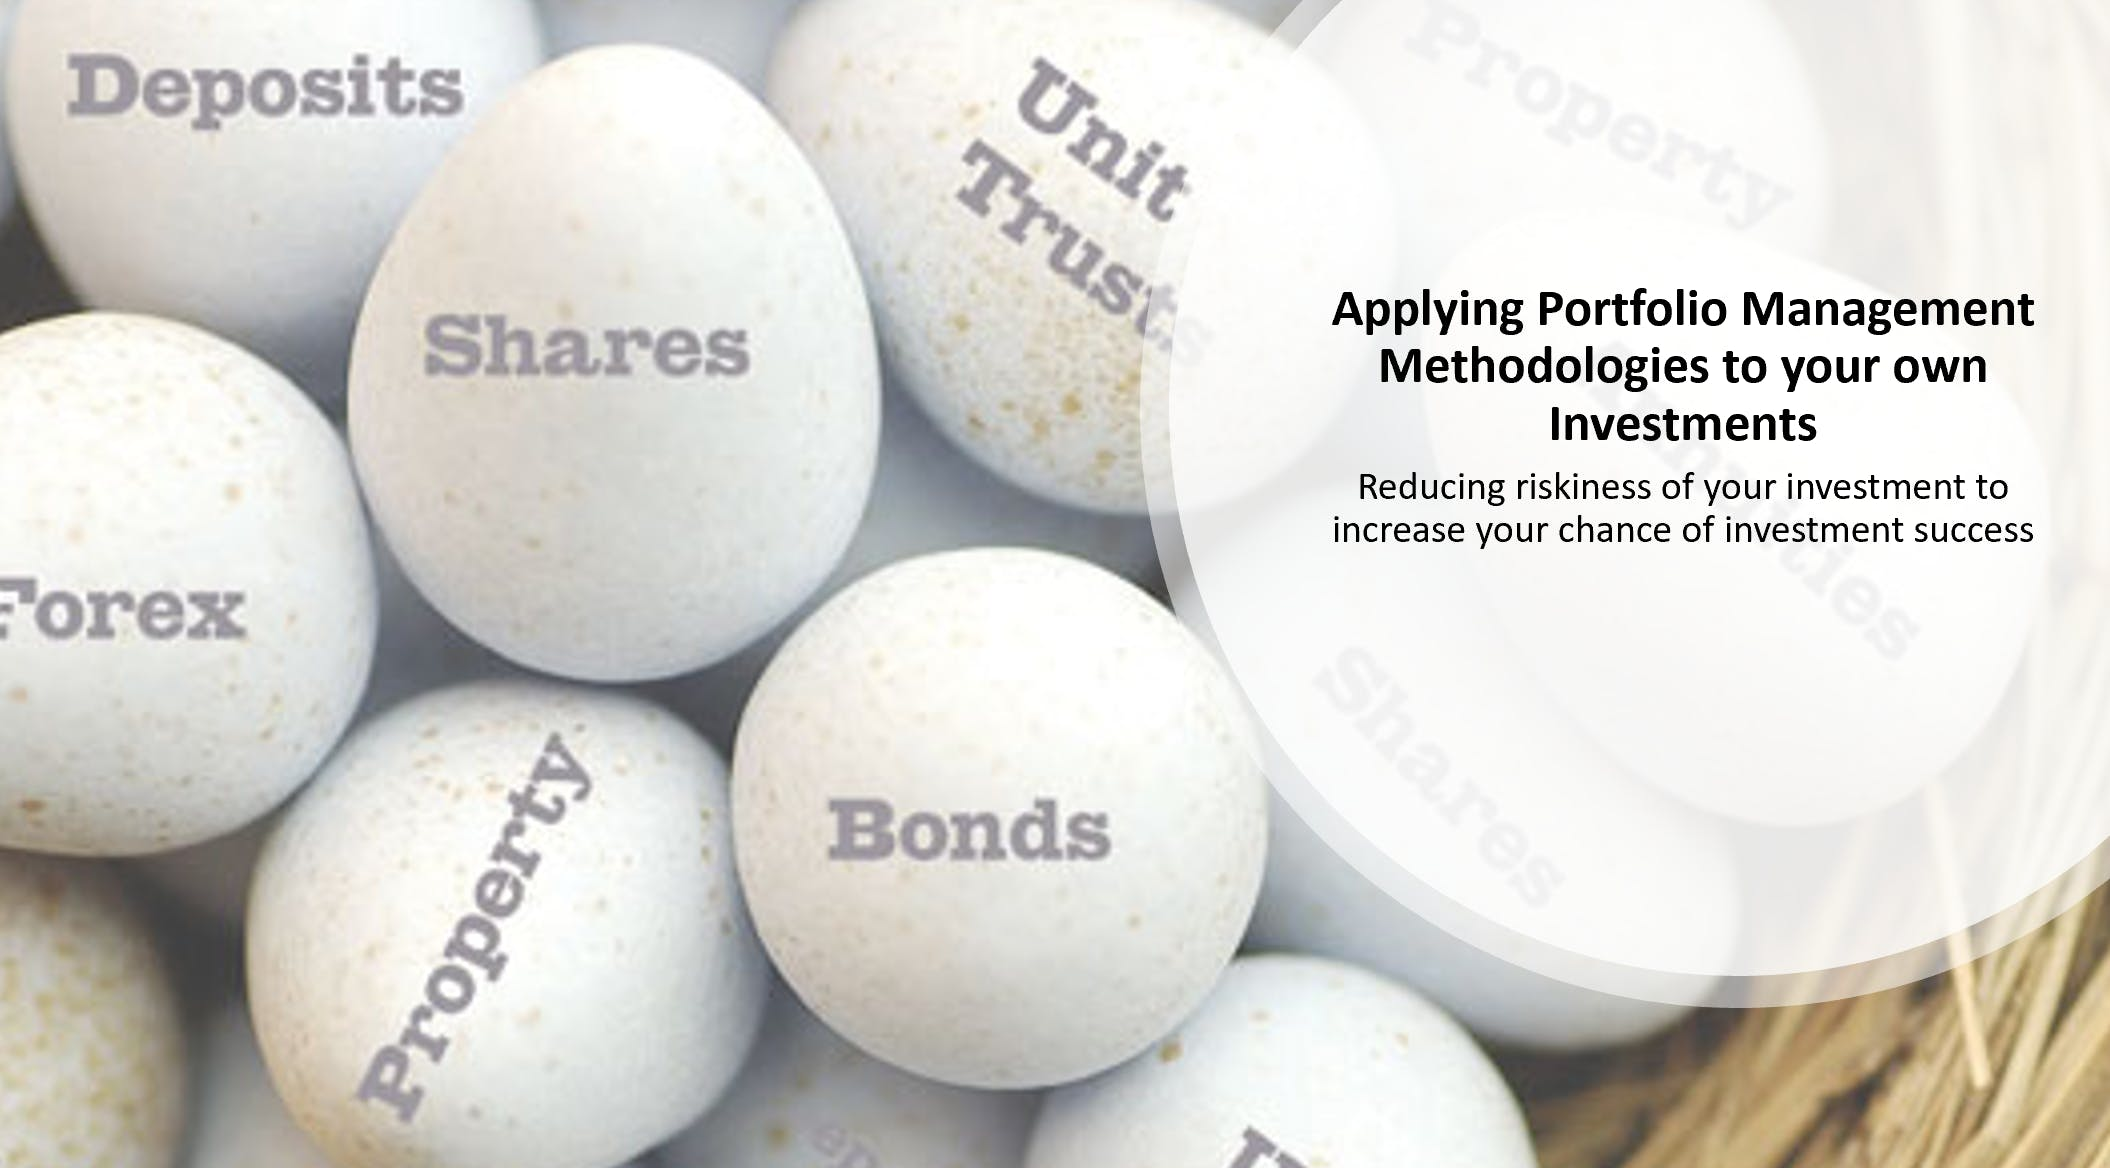 Applying Portfolio Management Methodologies to your own Investments